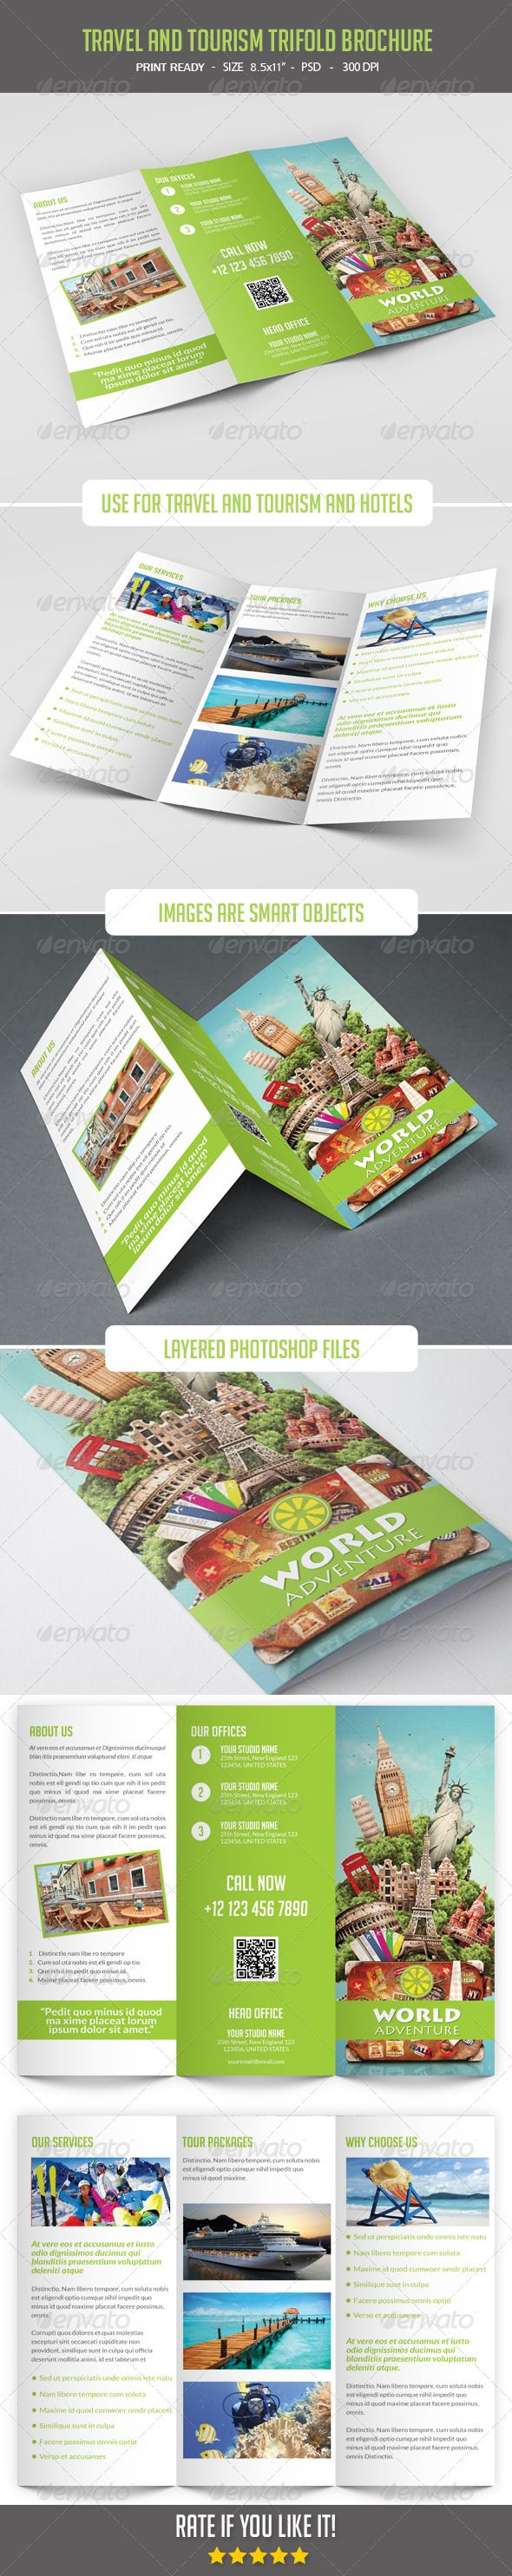 Travel and Tourism Trifold Brochure  PSD Template • Download ➝ https://graphicriver.net/item/travel-and-tourism-trifold-brochure/8067157?ref=pxcr